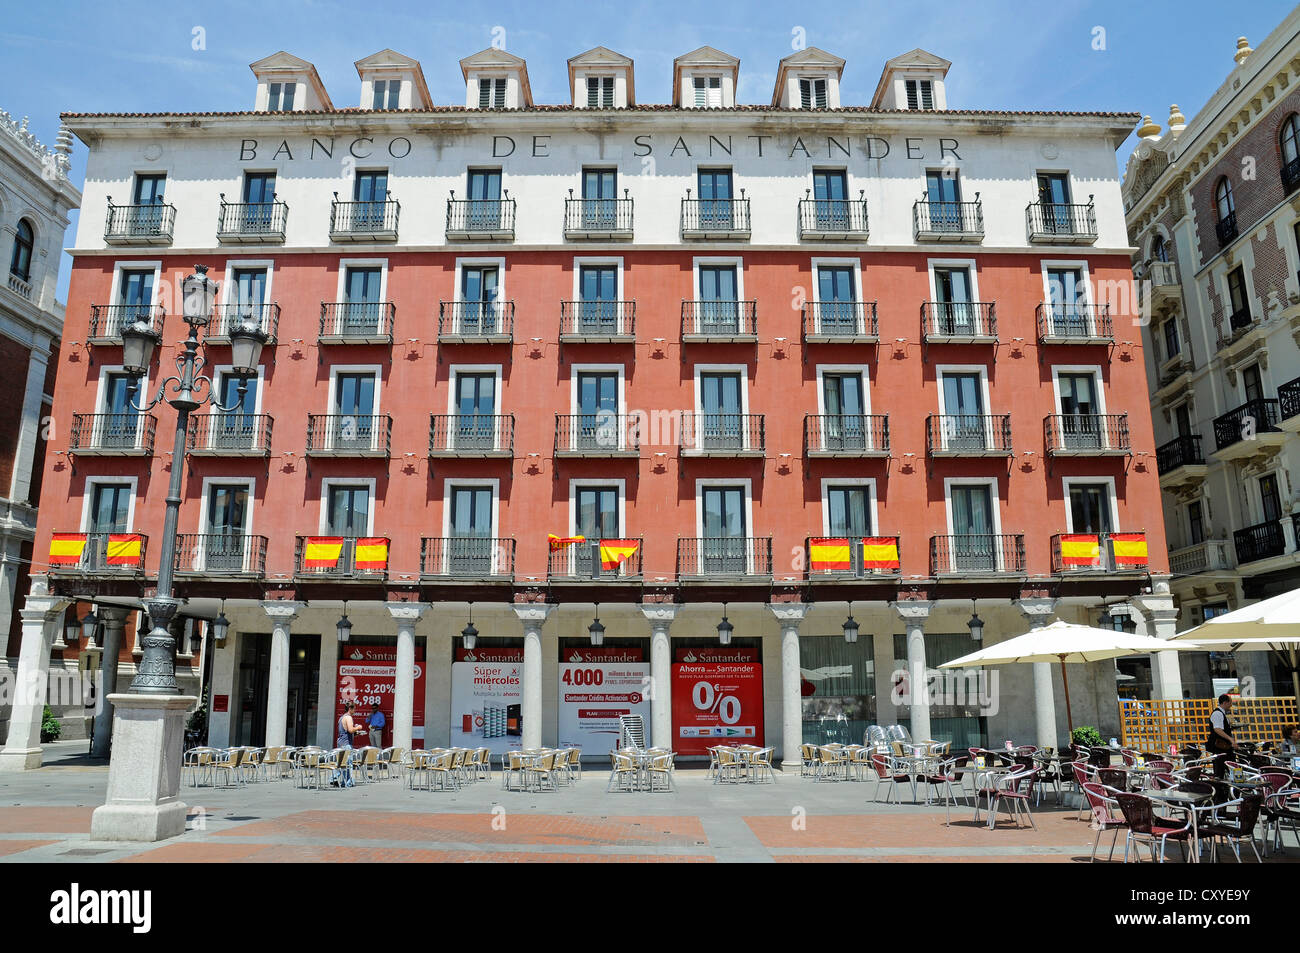 Bank shops stock photos bank shops stock images alamy for Oficina banco santander valladolid